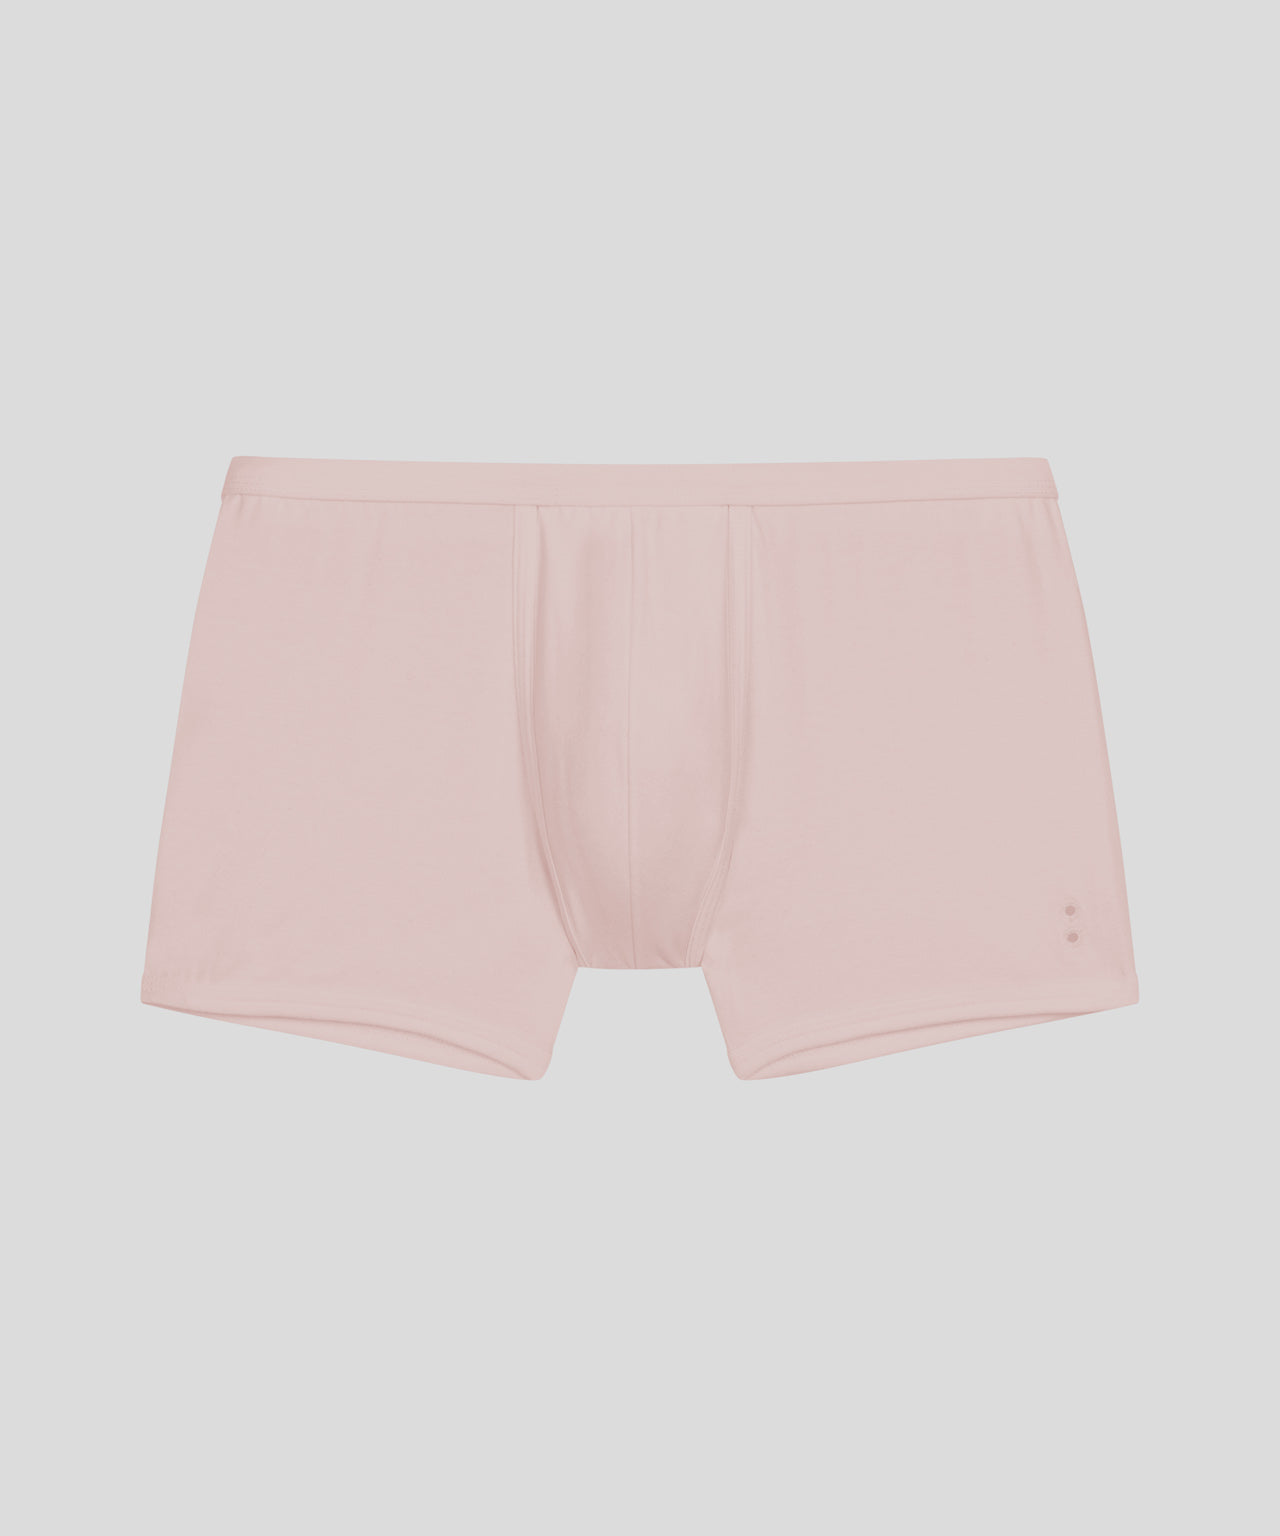 747 Boxer Briefs Kit - pink